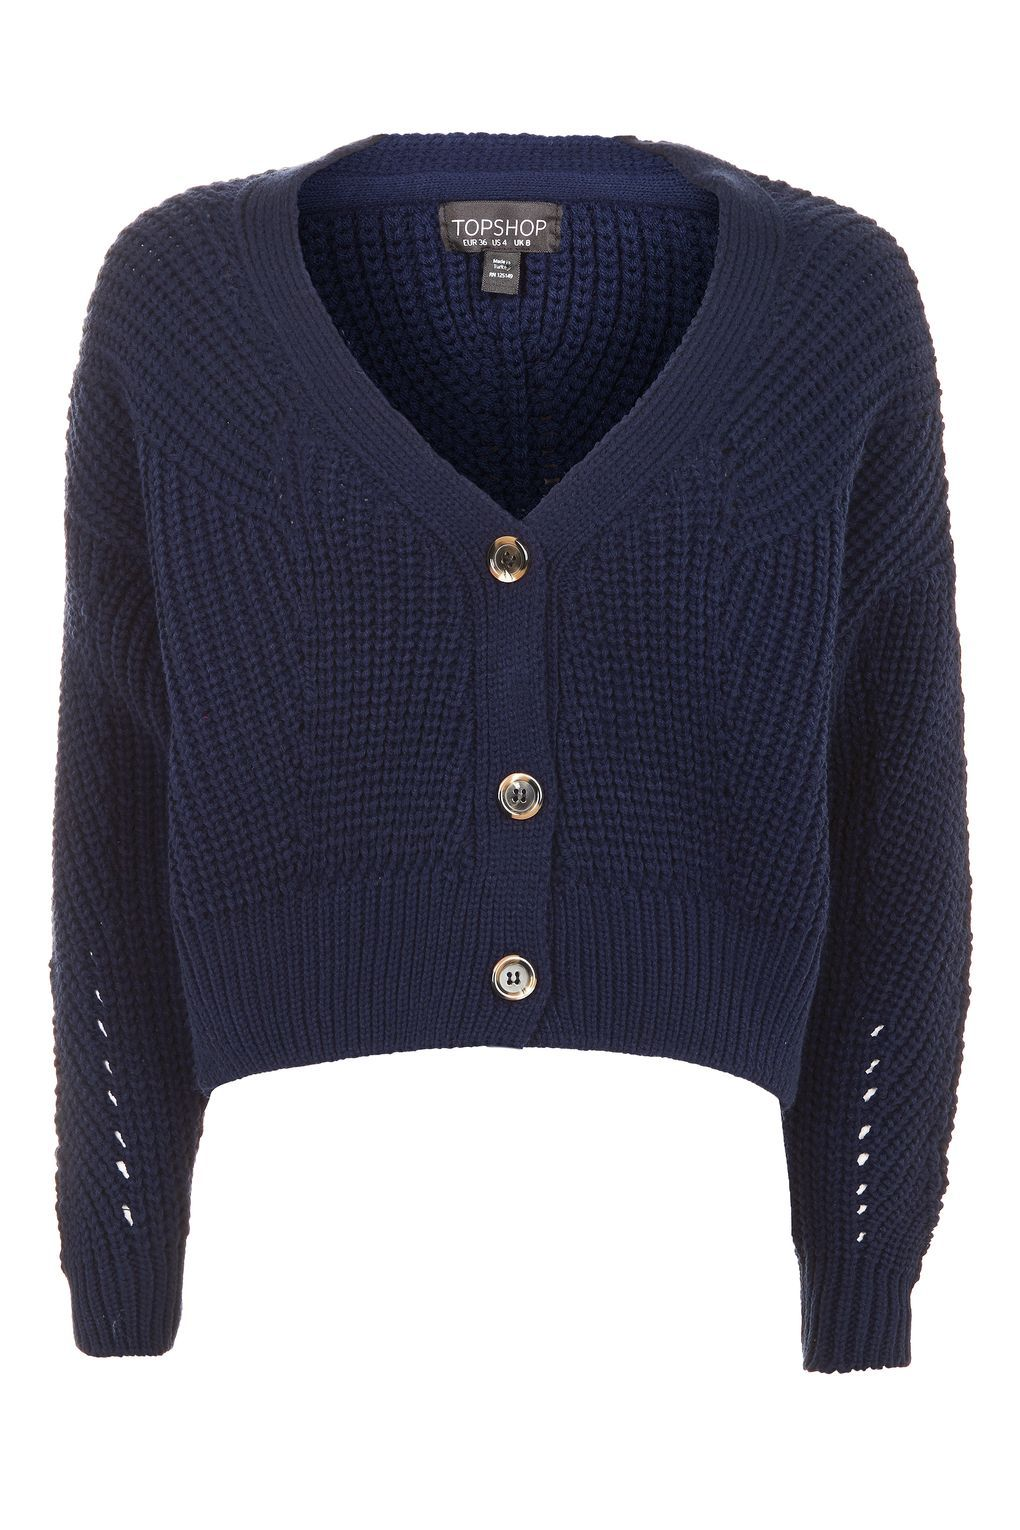 Cropped Fisherman Cardigan - New In | Topshop, Knitwear and Summer